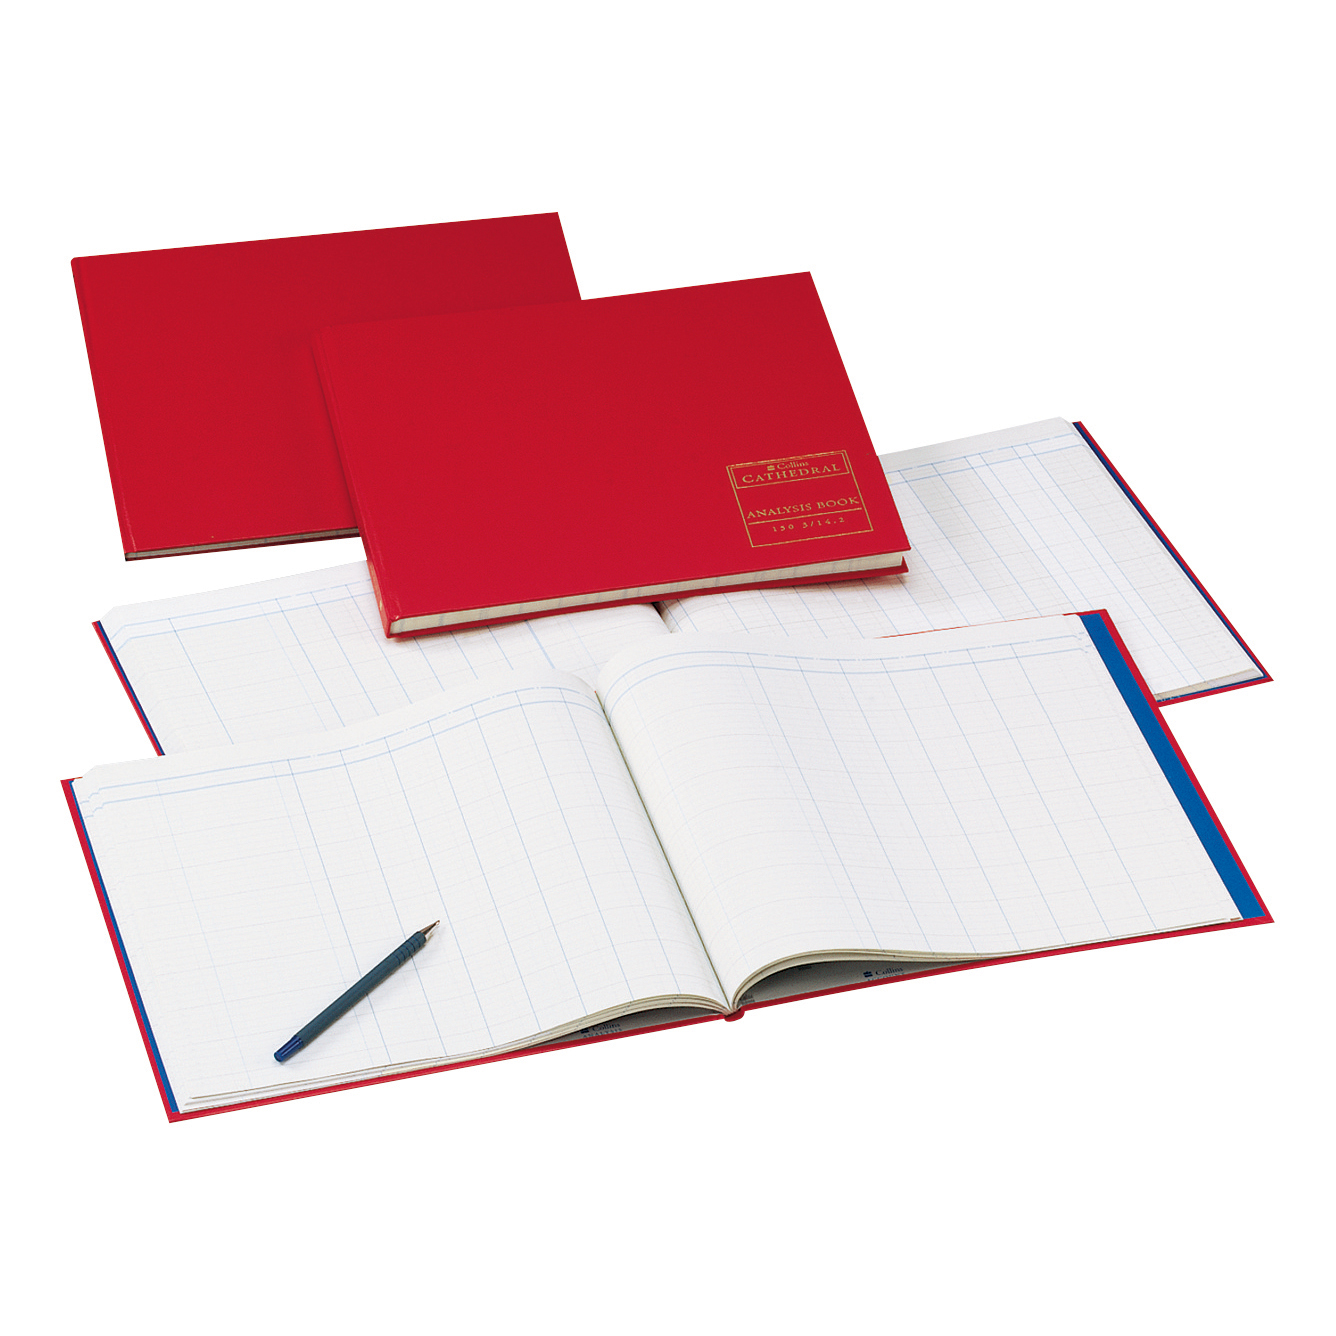 Accounts Binders & Refills Collins Cathedral Analysis Book 150 Series 9 Cash Column 96 Pages 297x315mm Ref 150/9.1